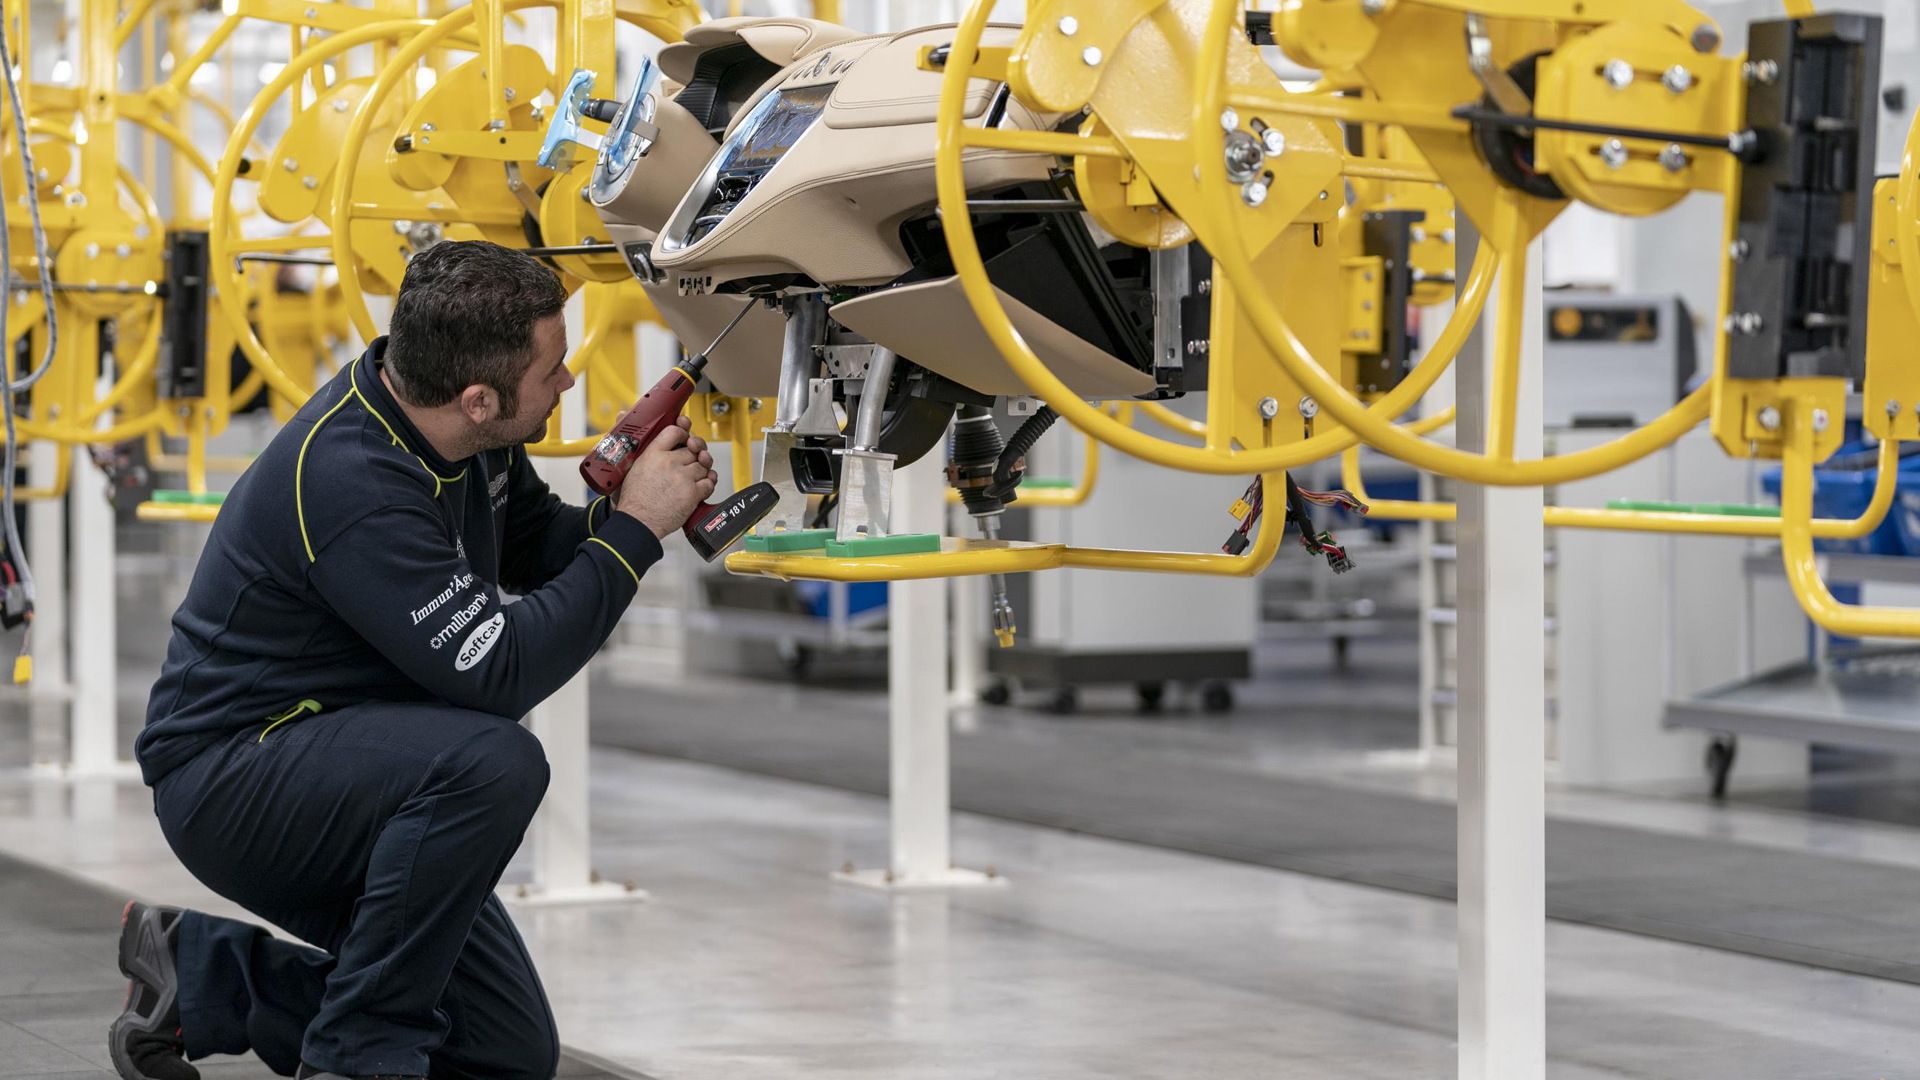 Aston Martin DBX production at plant in St Athan, Wales